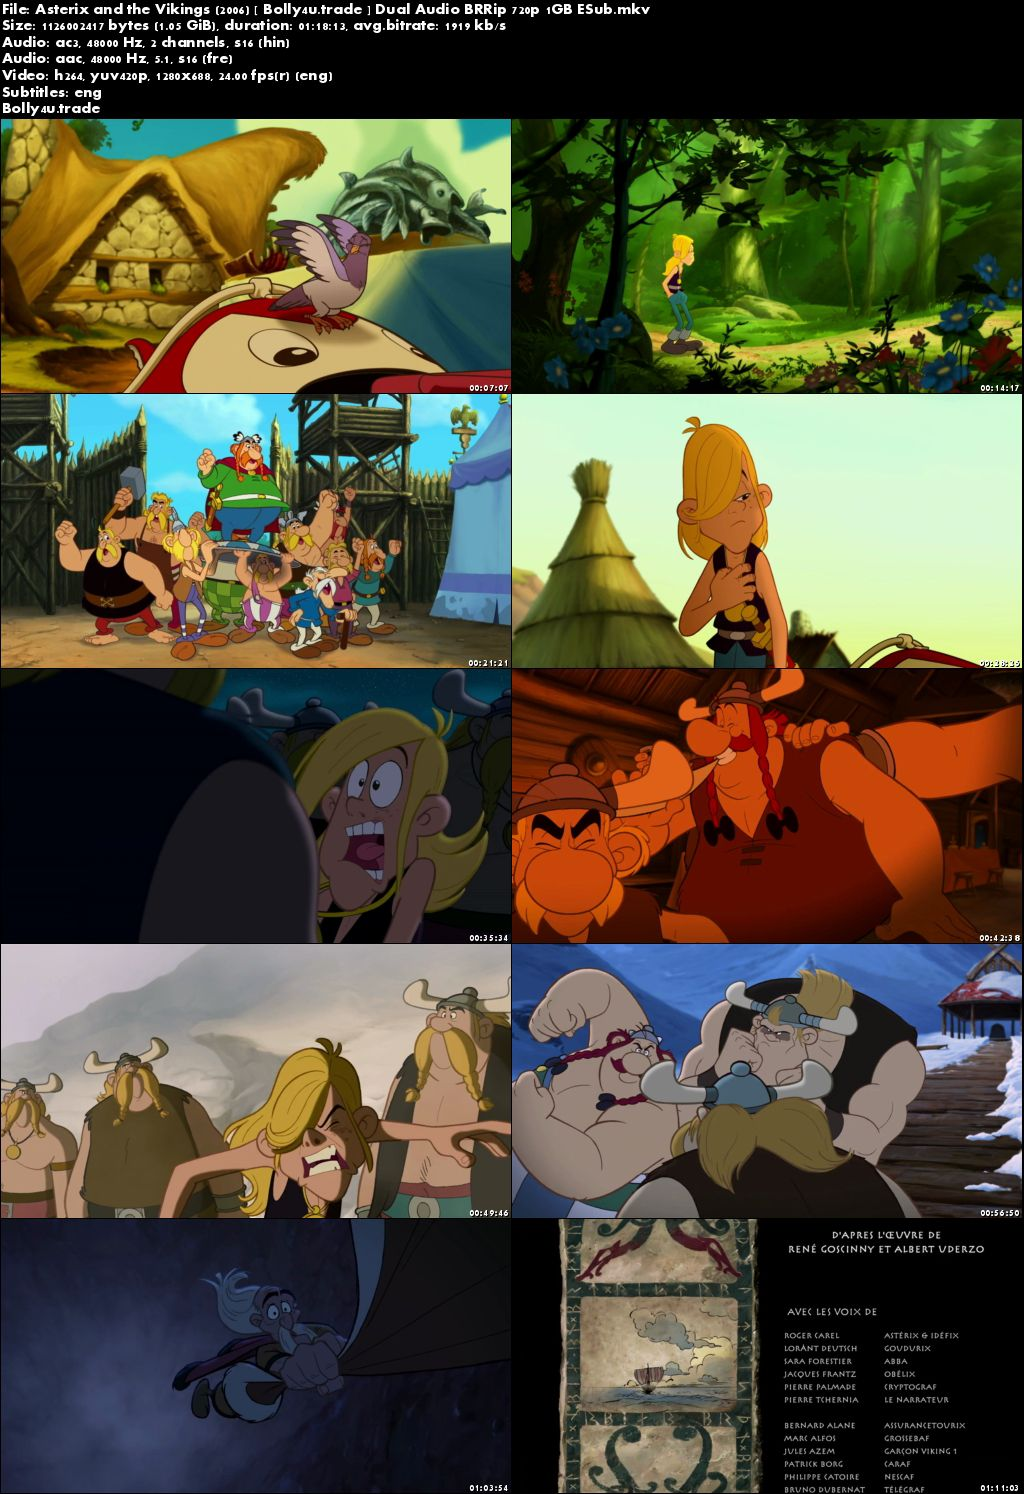 Asterix and the Vikings 2006 BRRip 1Gb Hindi Dual Audio 720p ESub